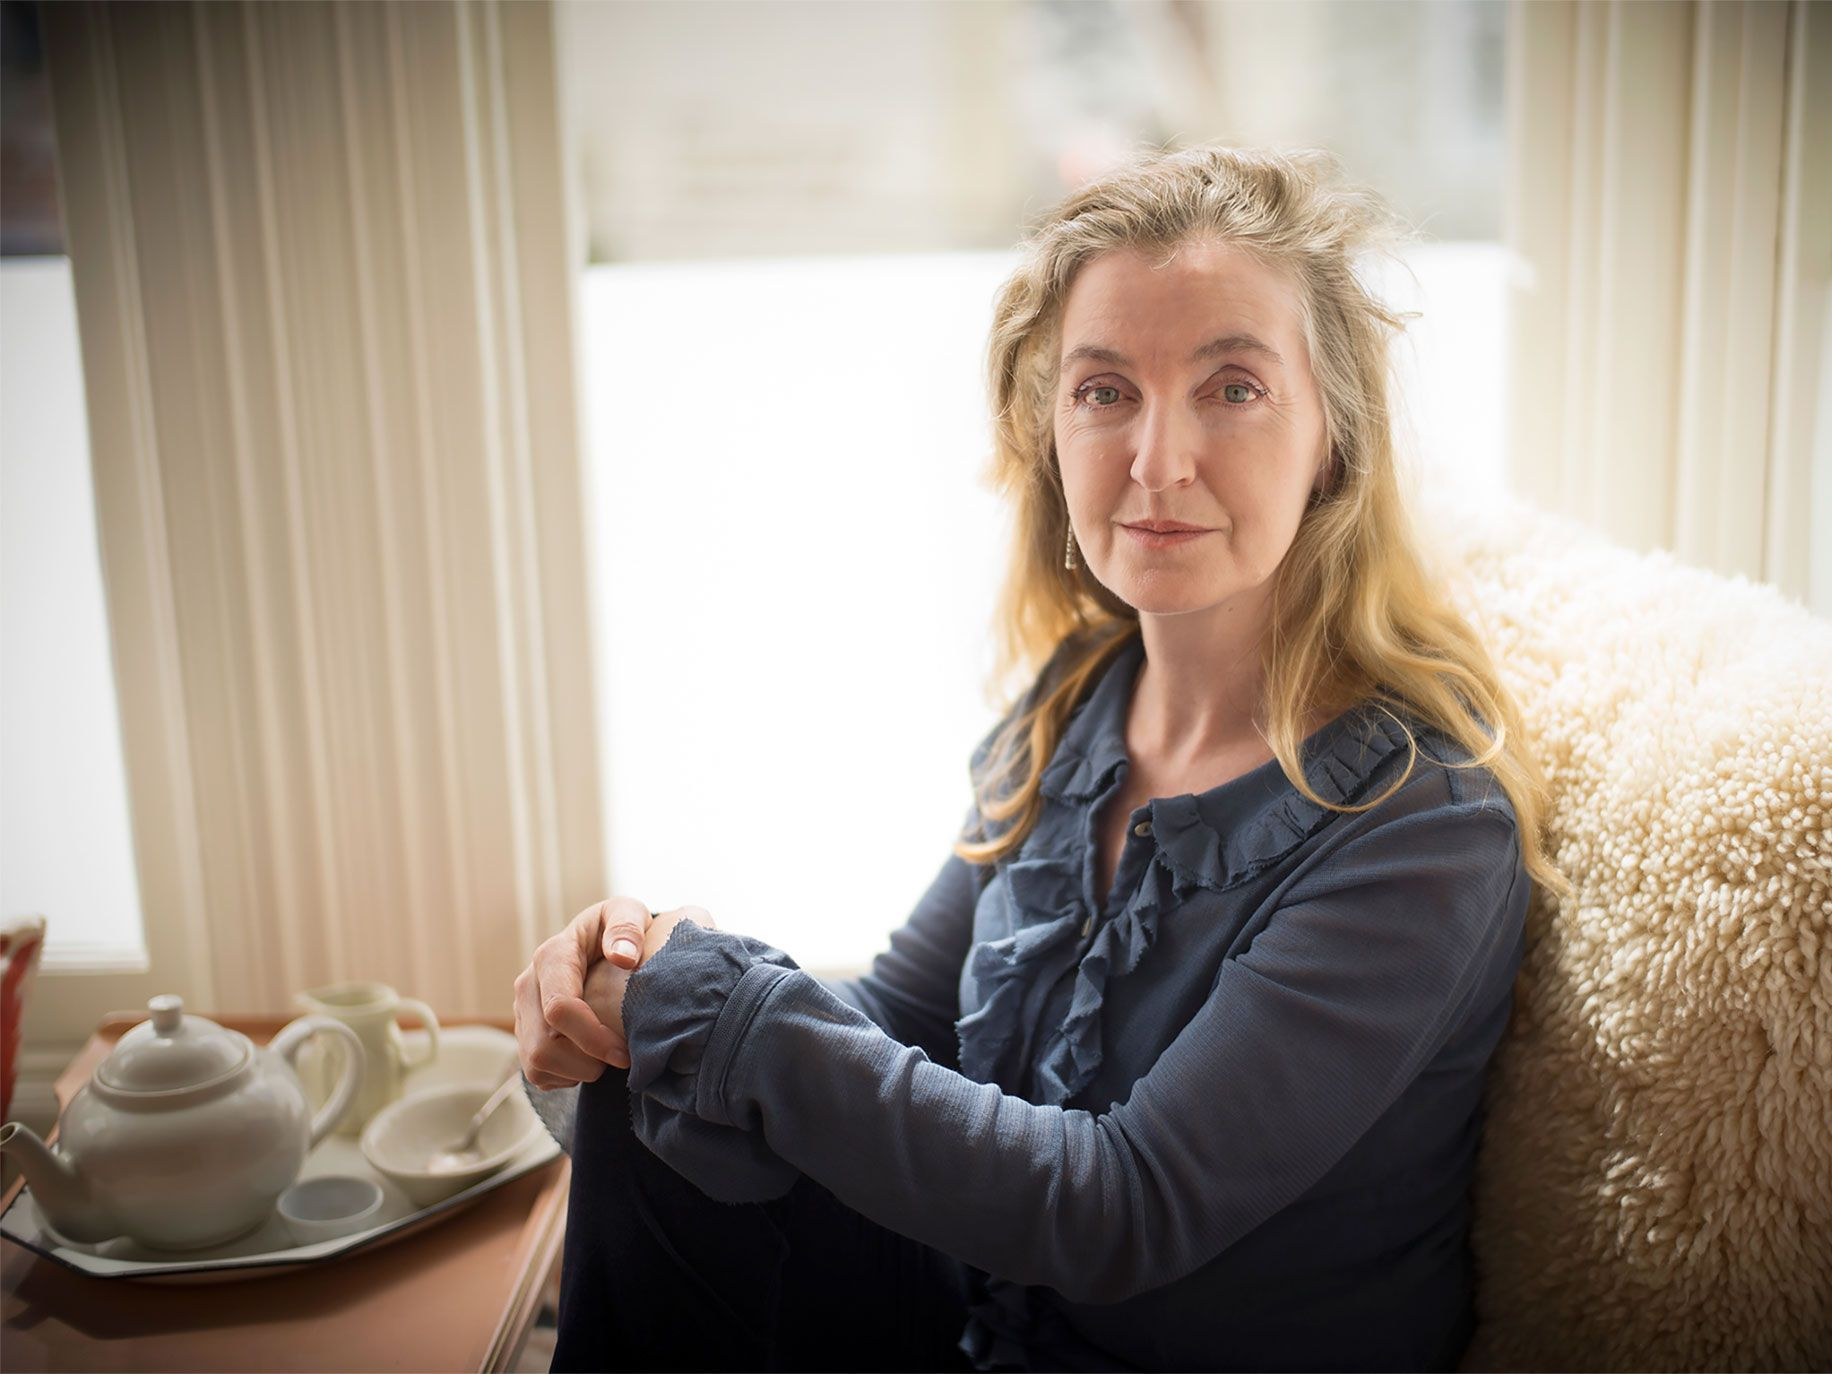 Rebecca Solnit's new books Whose Story Is This? Old Conflicts, New Chapters and Recollections of My Nonexistence raise fascinating questions about the essay and how it operates.